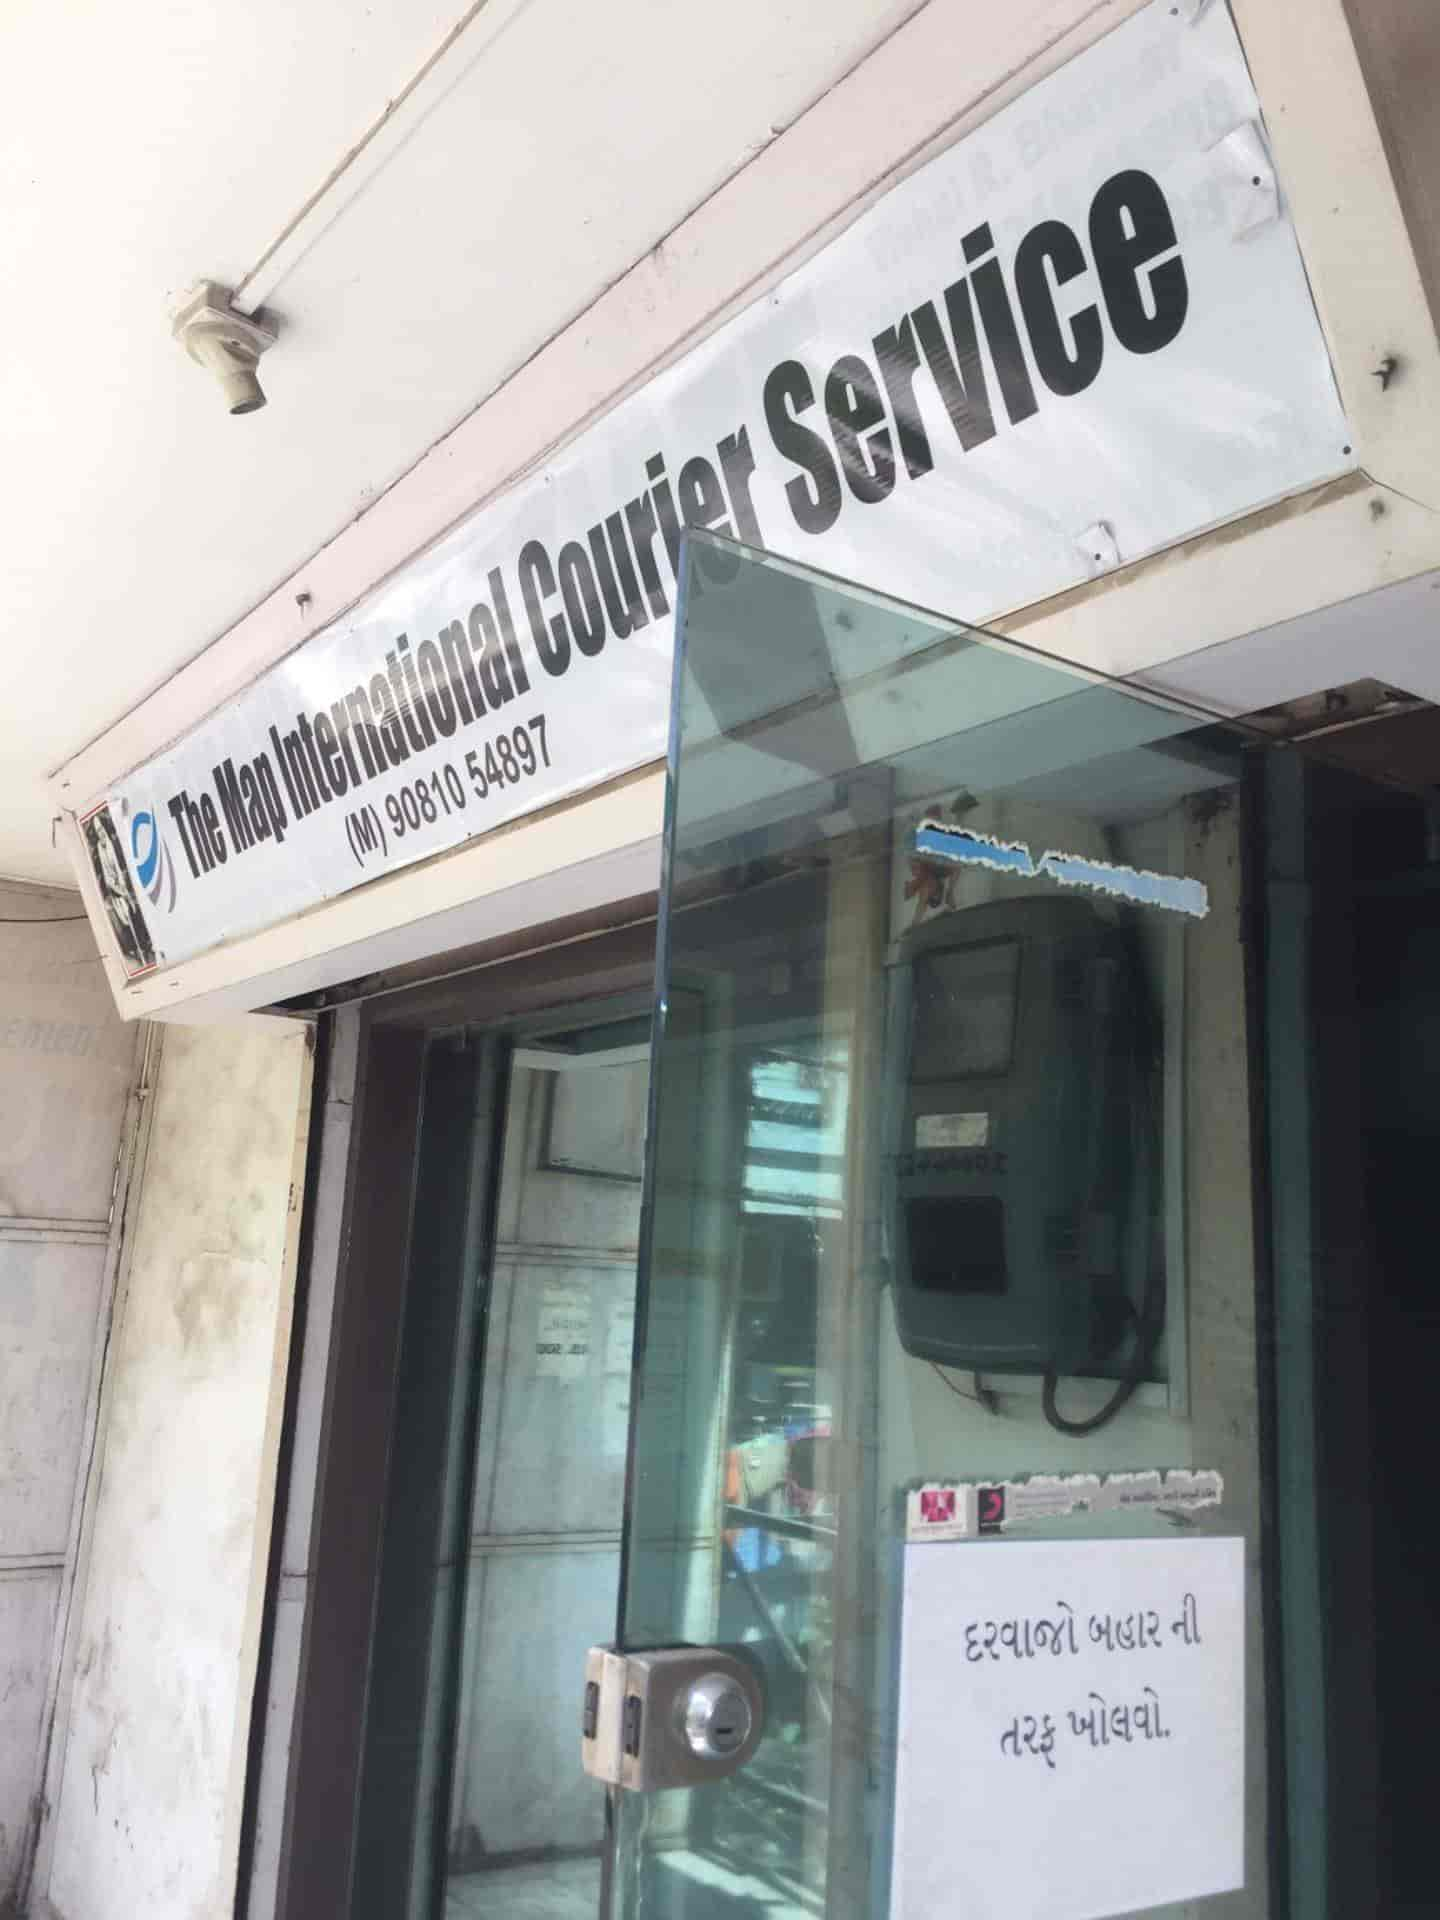 The Map International Courier Service Bapunagar Ahmedabad International Courier Services Justdial